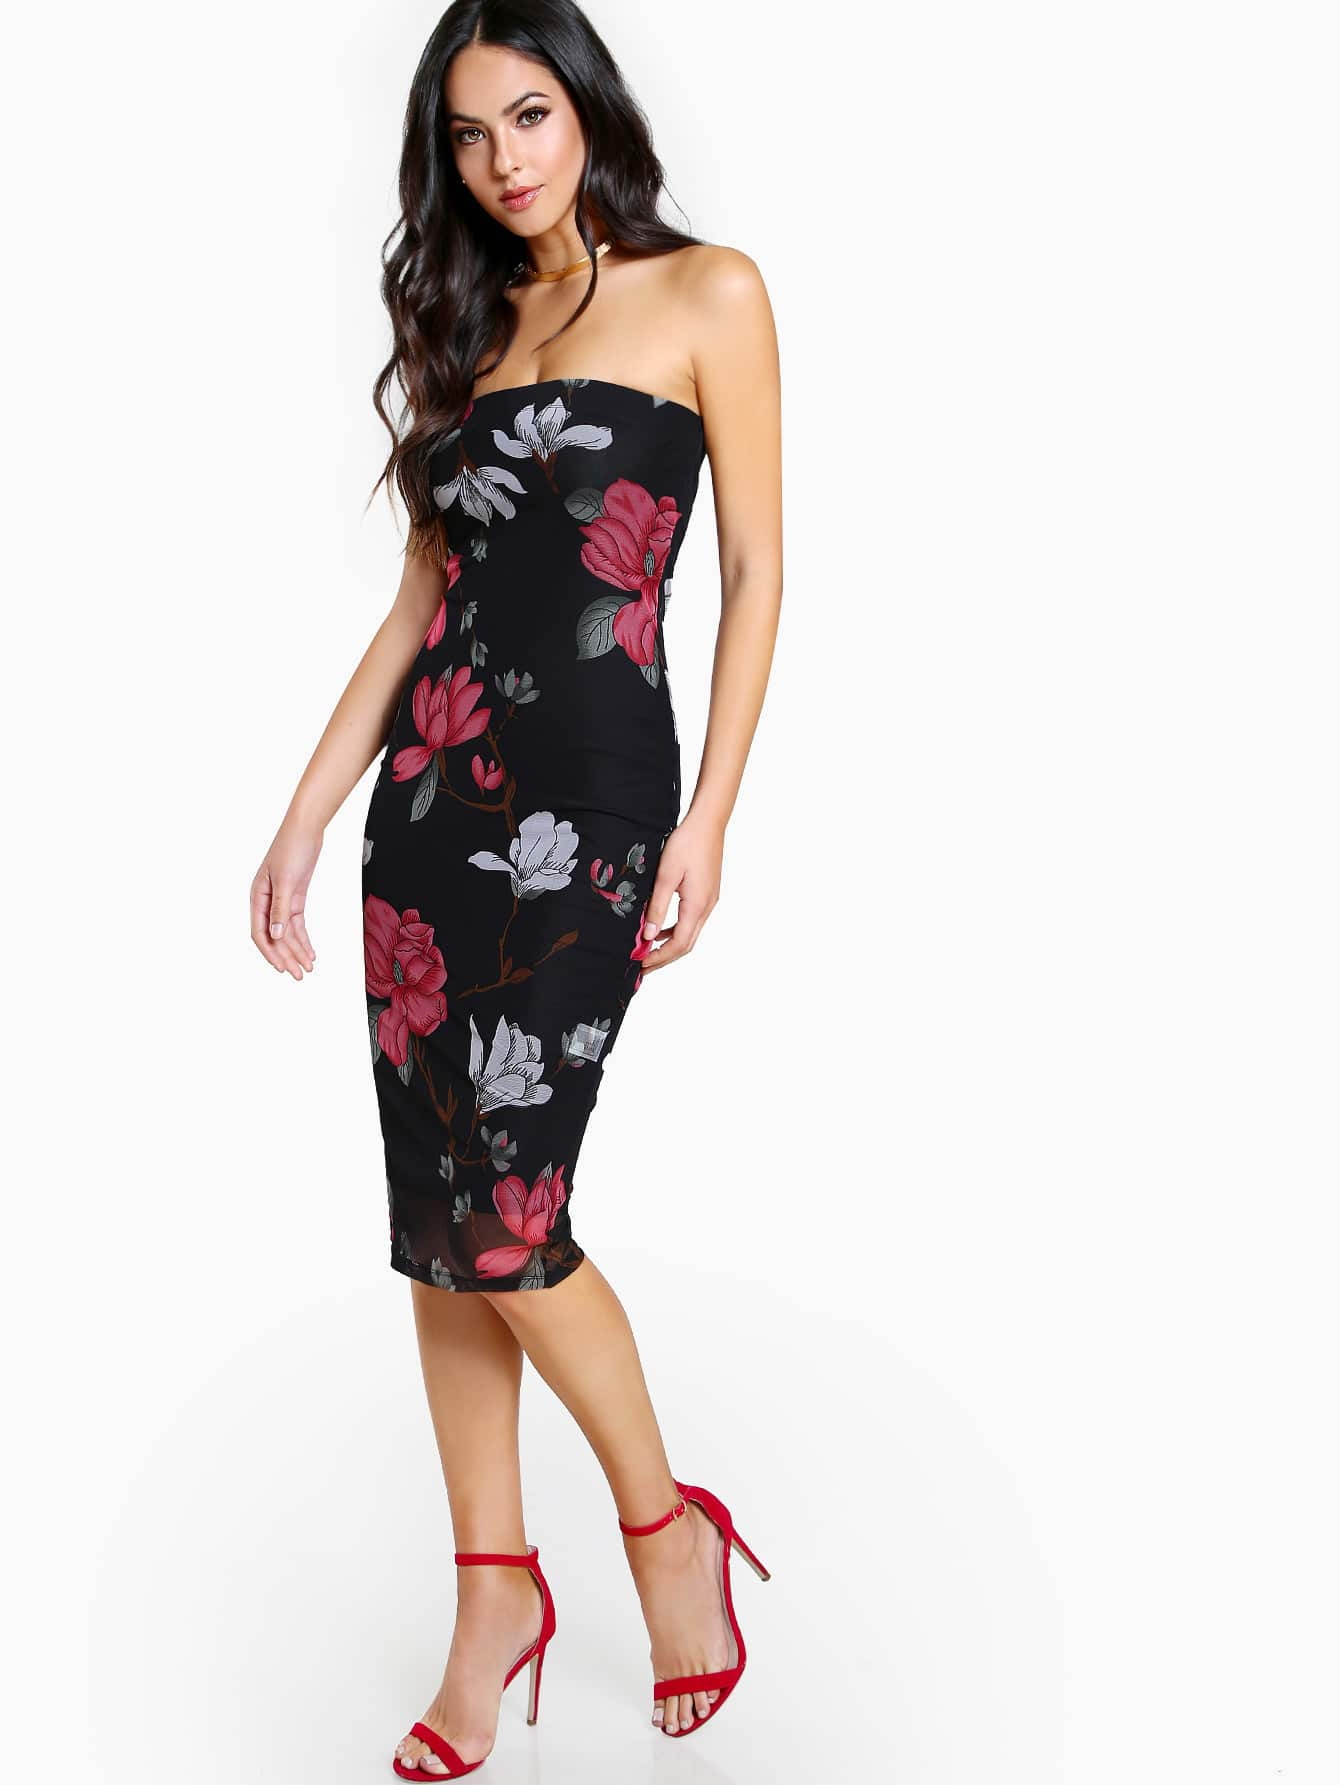 Flower Print Bandeau Dress Flower Print Bandeau Dress